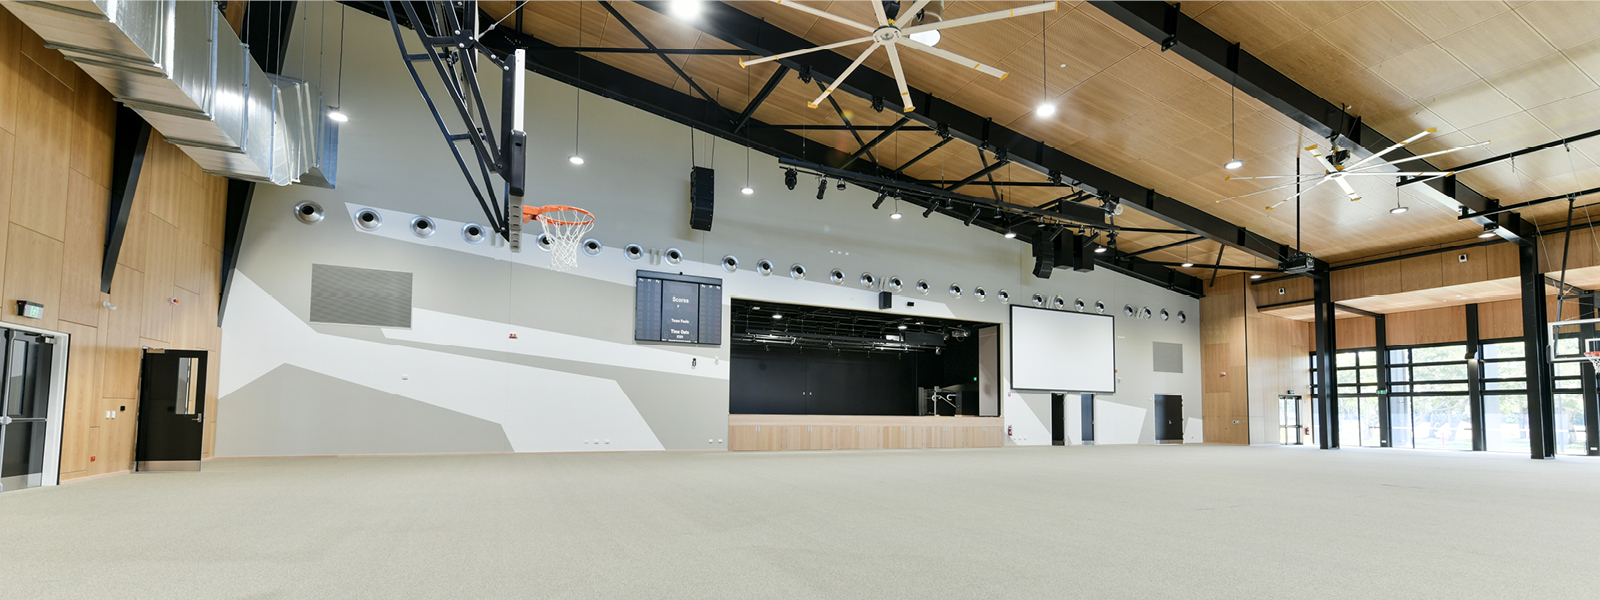 Multiplex exihition hall venue